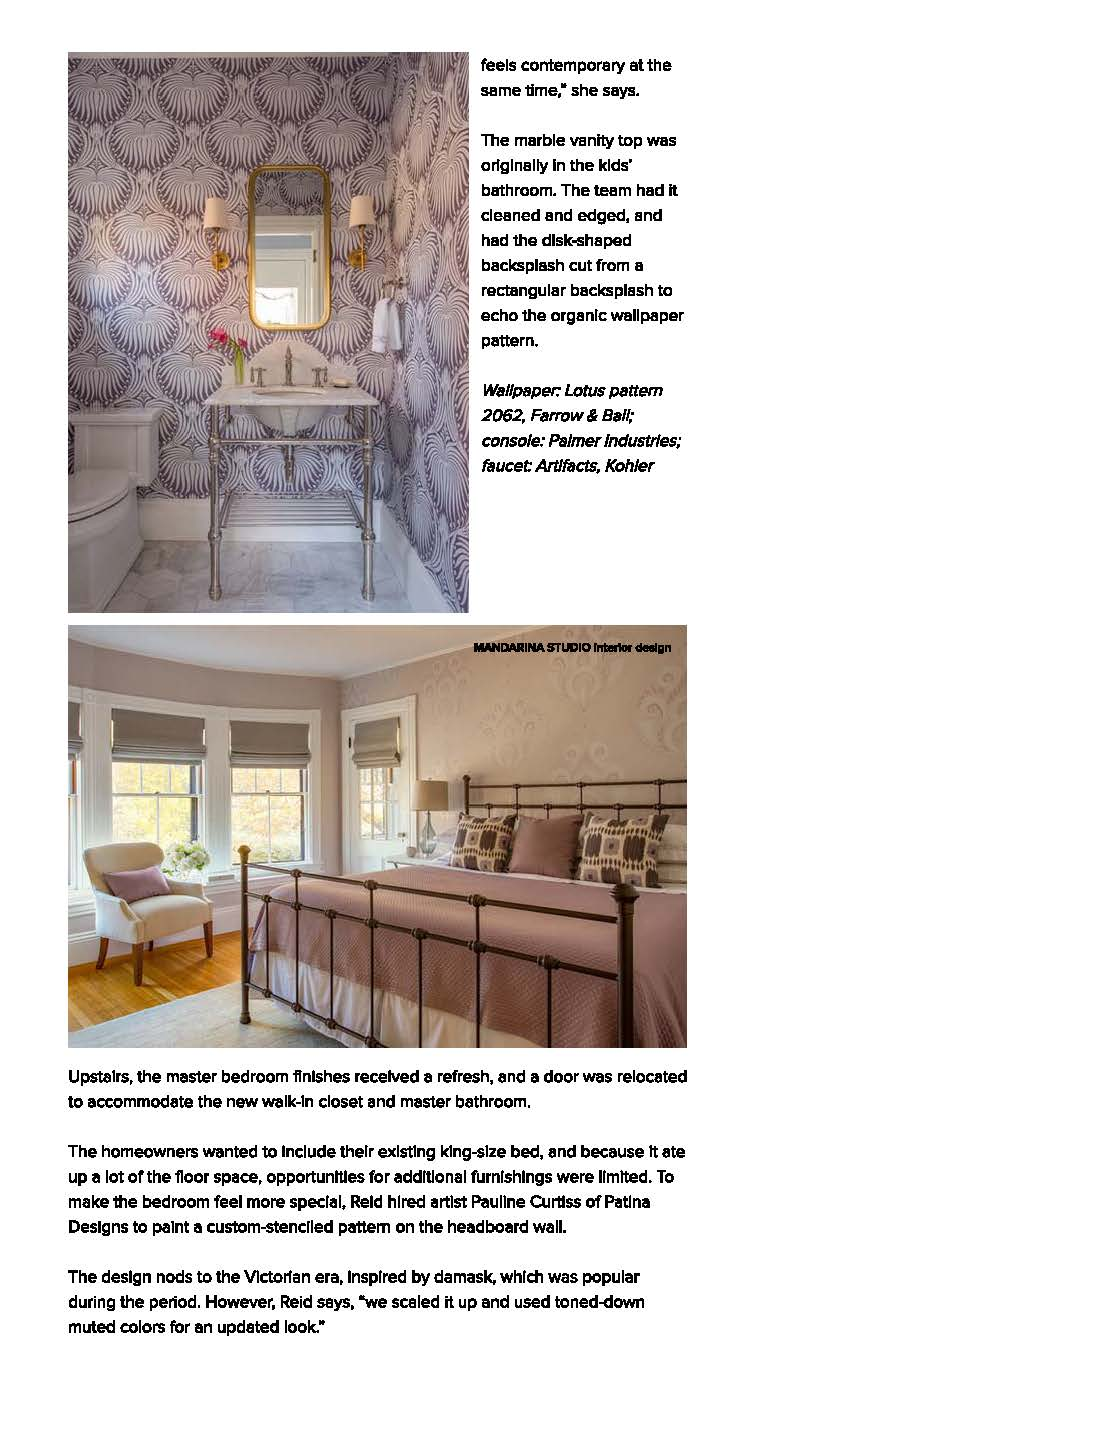 Houzz Tour_ The Remaking of a Queen Anne in Boston (1)_Page_07.jpg